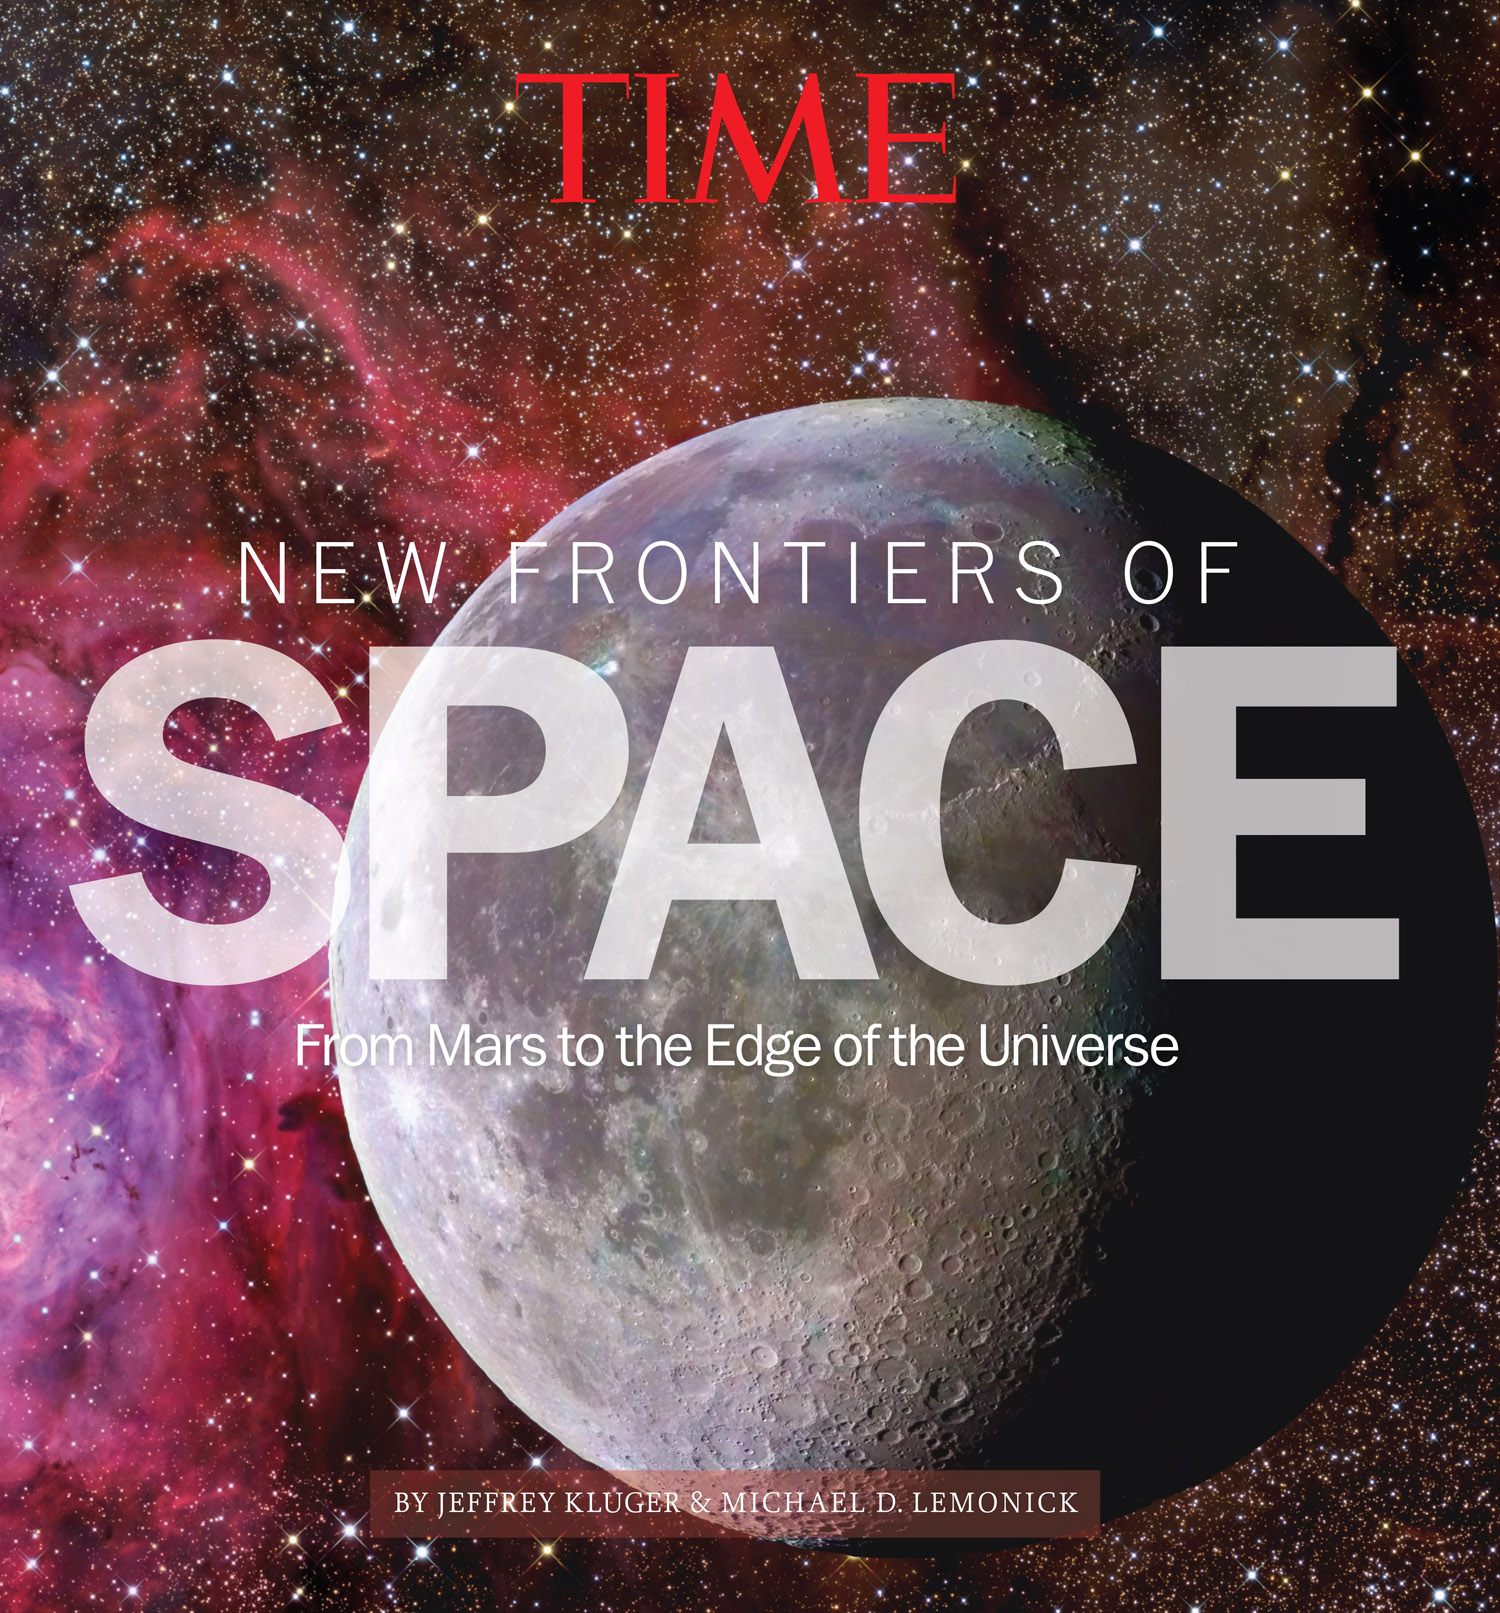 Book explores the 39 new frontiers of space 39 for Time to space